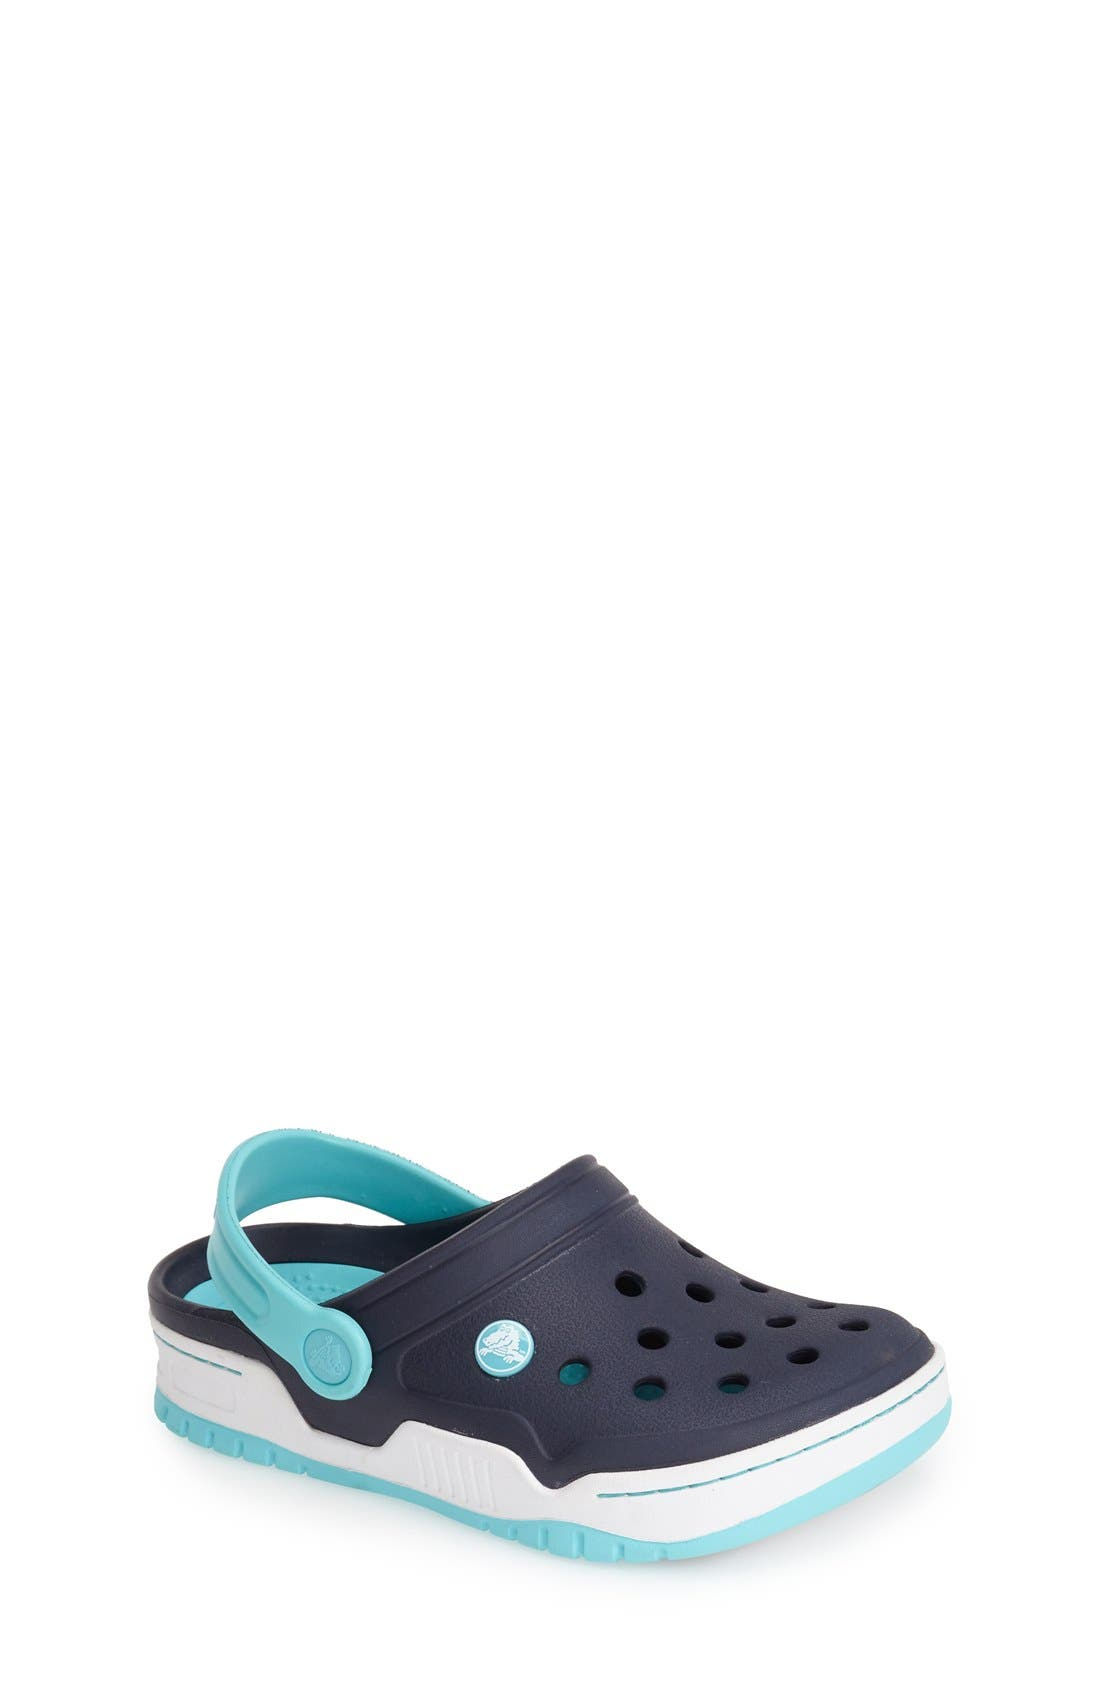 Alternate Image 1 Selected - CROCS™ 'Front Court' Sandal (Walker, Toddler & Little Kid)